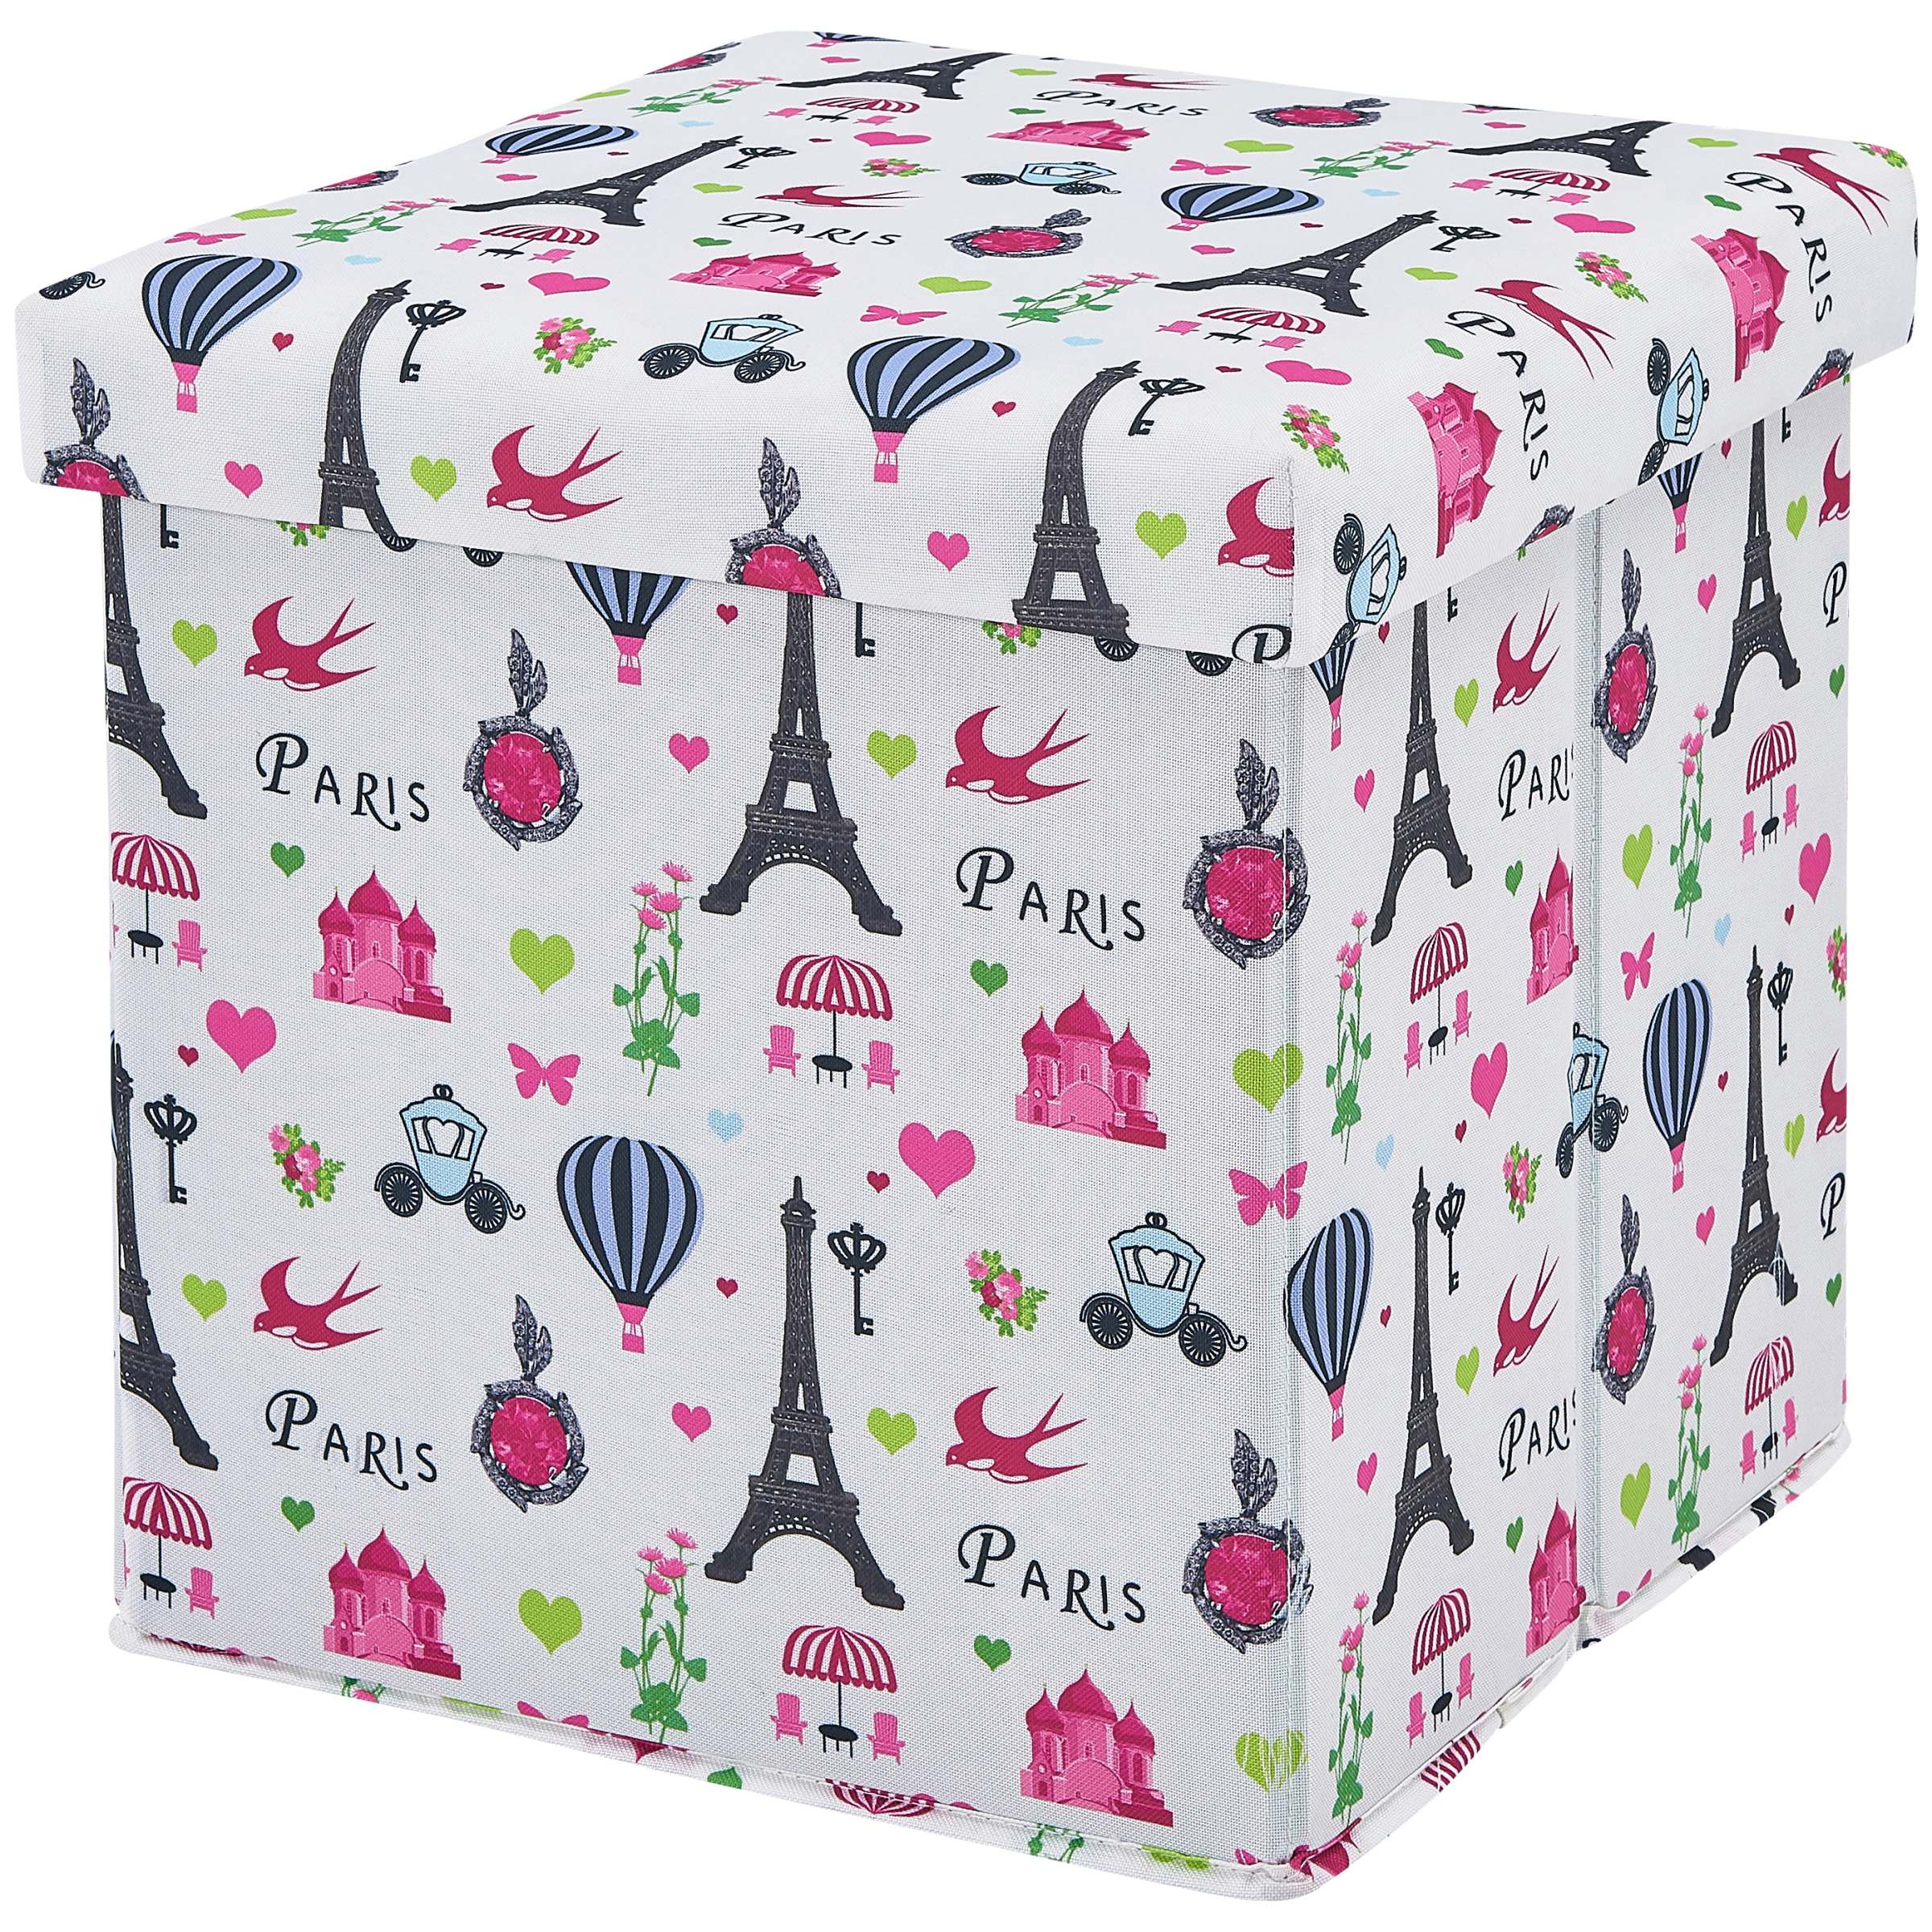 Mainstays Kids Paris Collapsible Storage Ottoman, Paris Themed Design